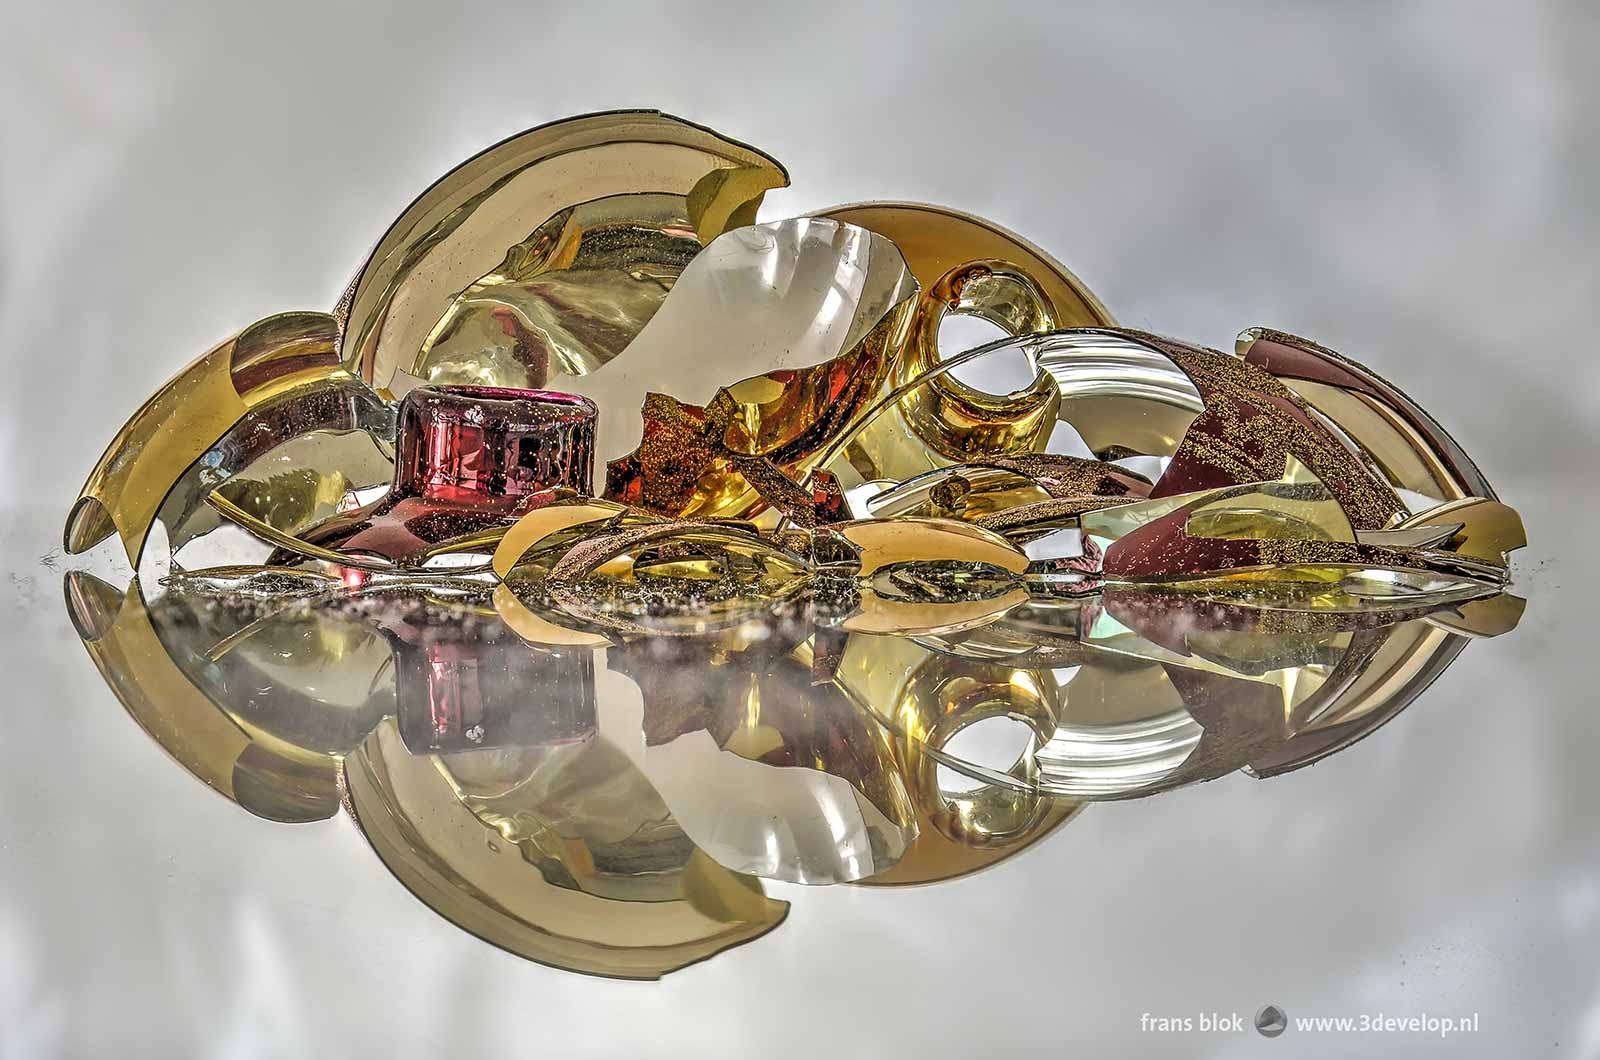 Composition with shards of a red and a gold colored Christmas bauble, sien from a low angle